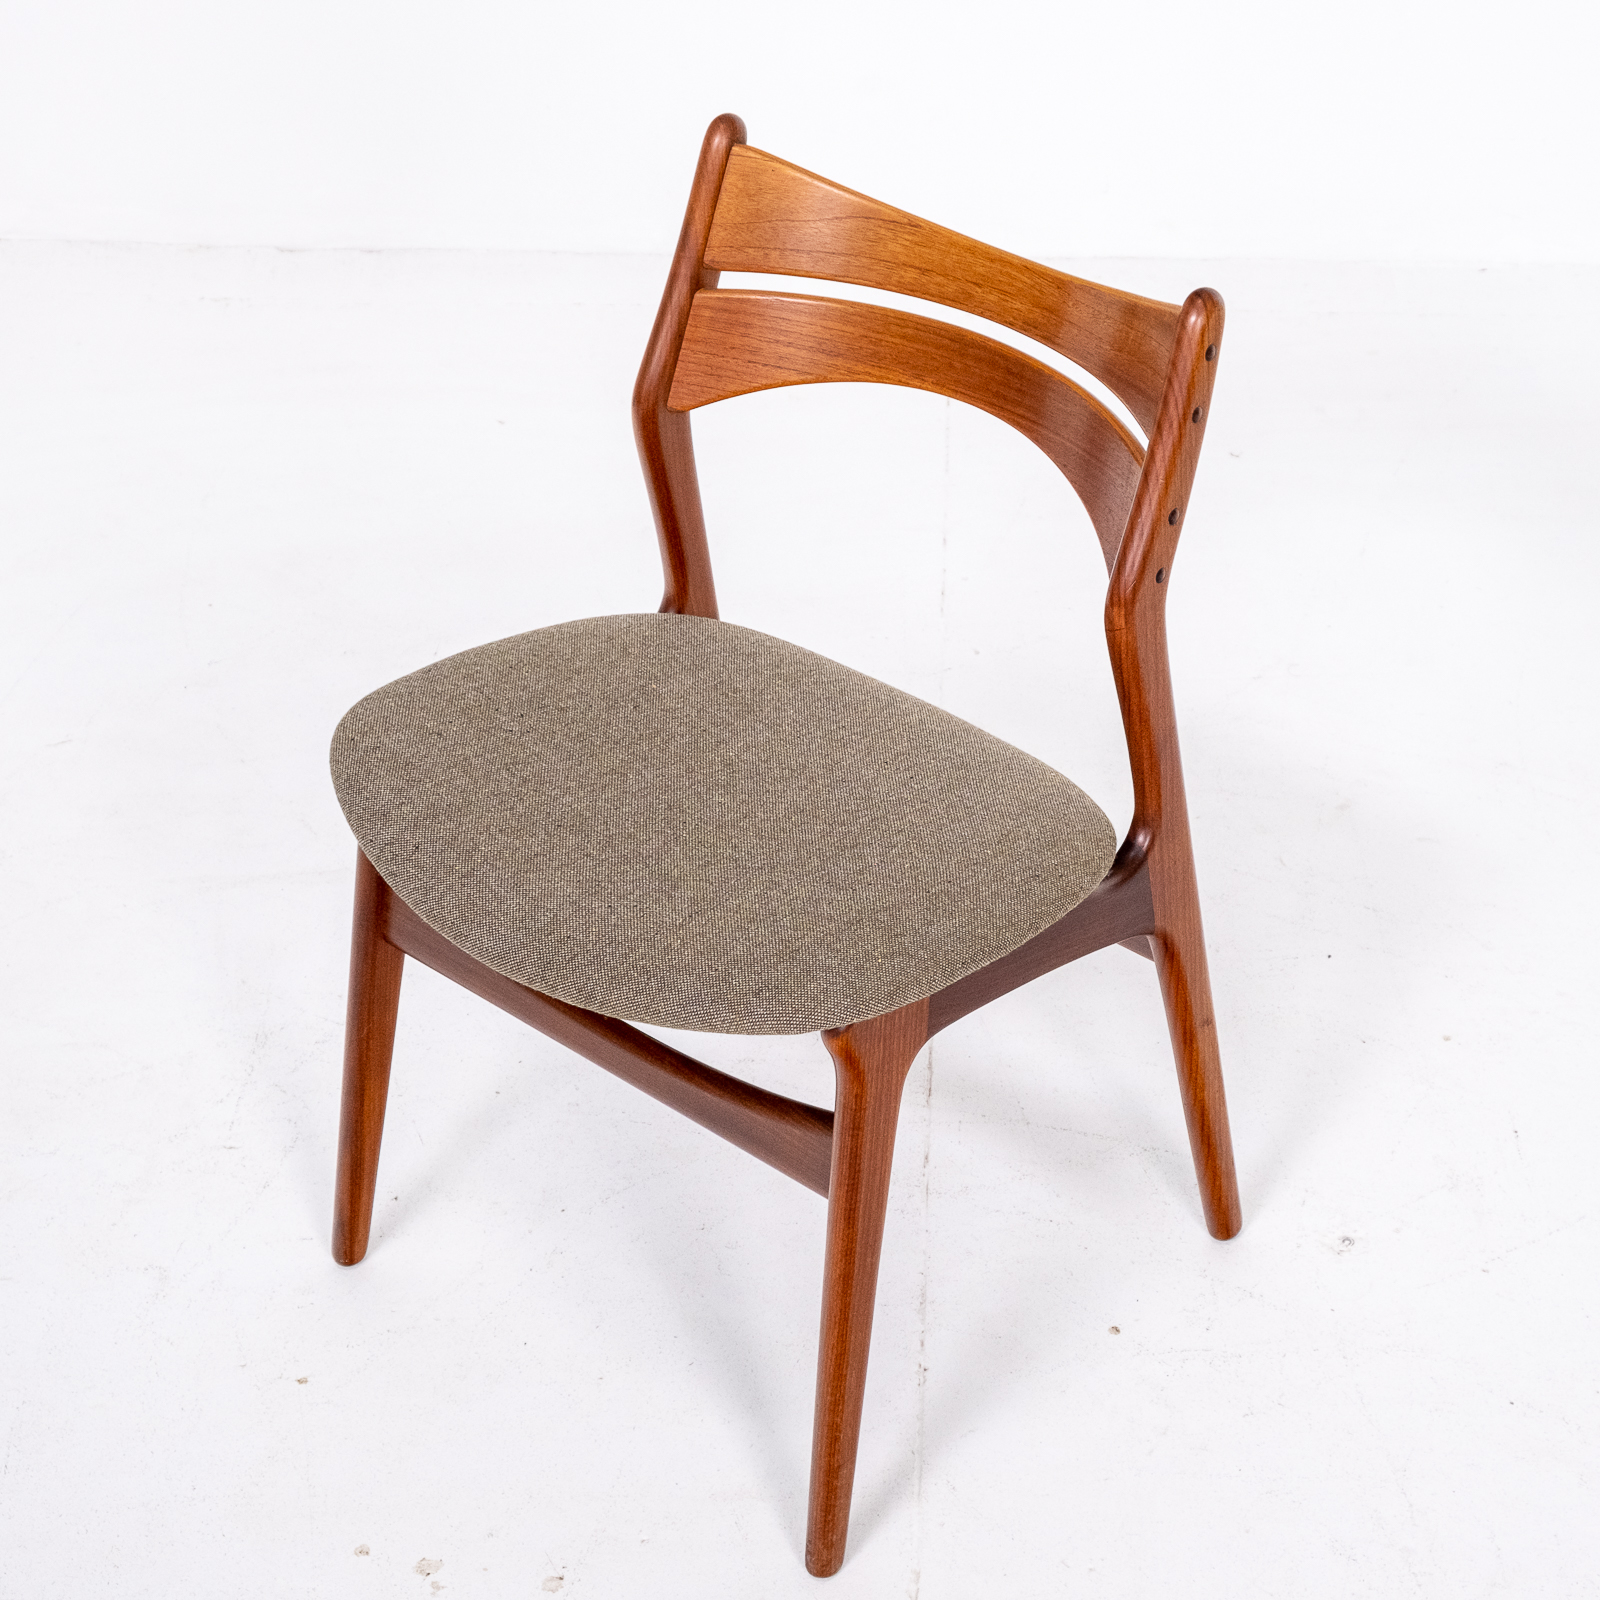 Set Of 2 Model 130 Dining Chairs By Erik Buch For Christian Christensens Mobelfabrik In New Instyle Upholstery And Teak, 1960s, Denmark 04